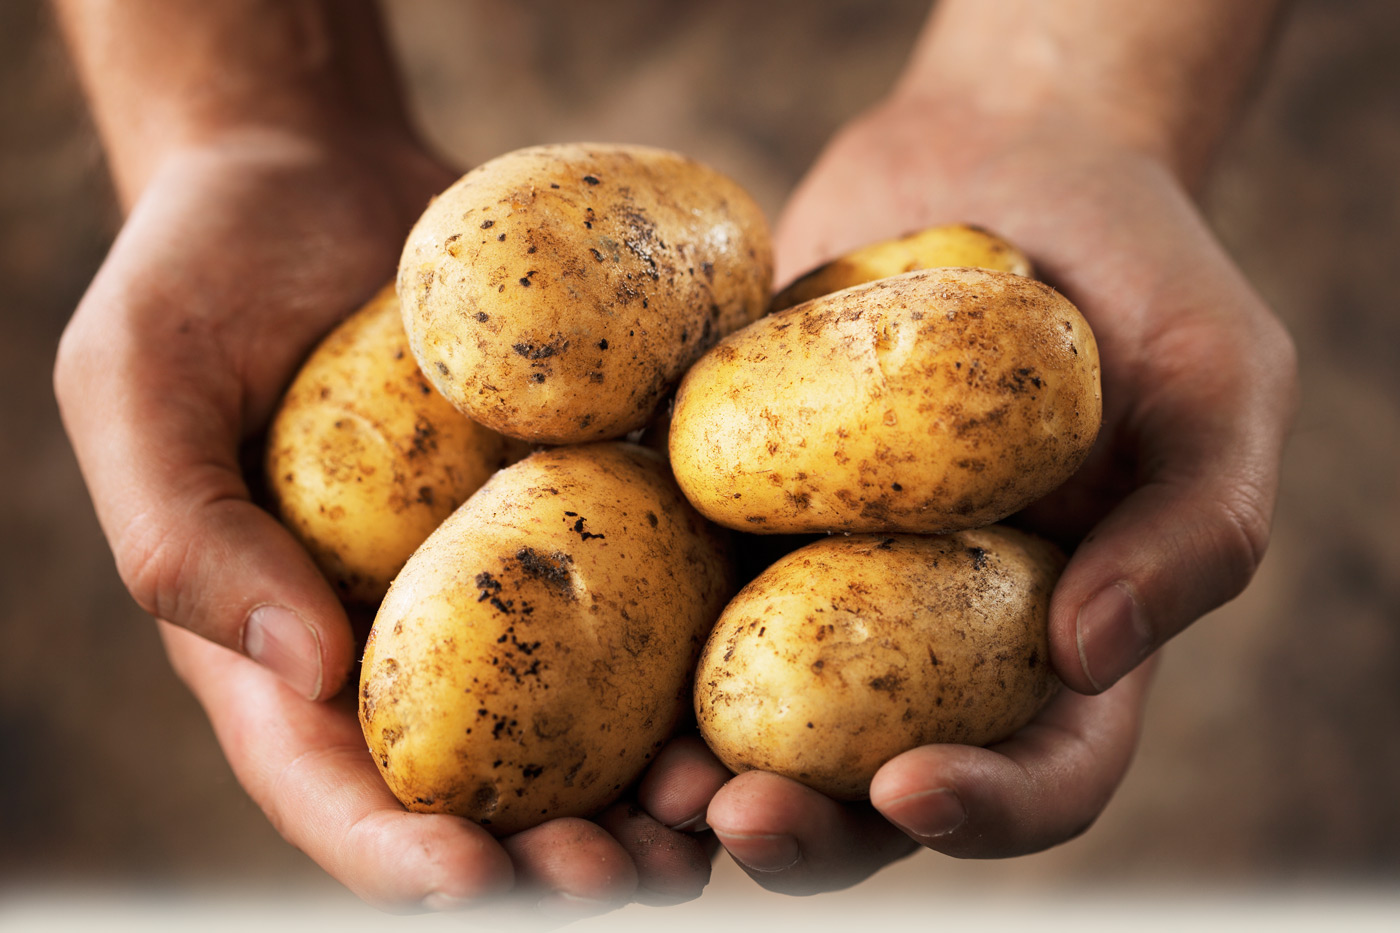 Potato Bunch in the Hands 147.42 Kb